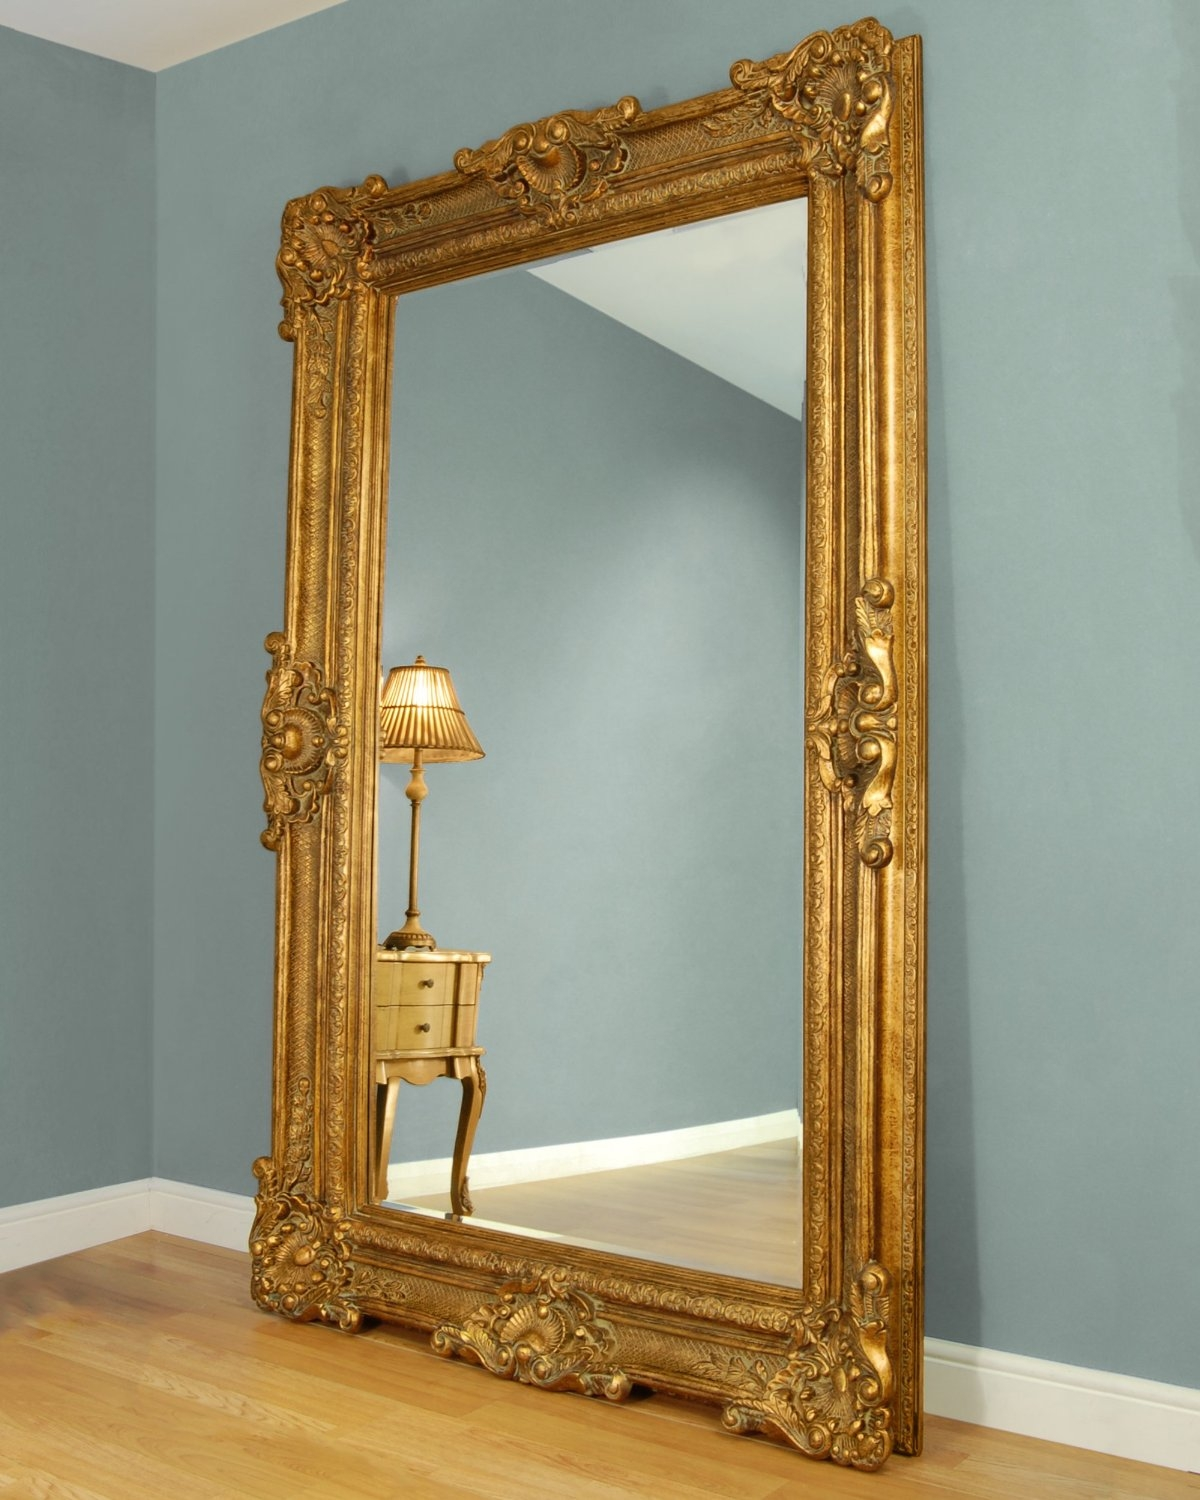 Gold Framed Mirror Imperial Gold Framed Mirror Max Size 20 X24 With Regard To Large Gold Ornate Mirror (Image 5 of 15)